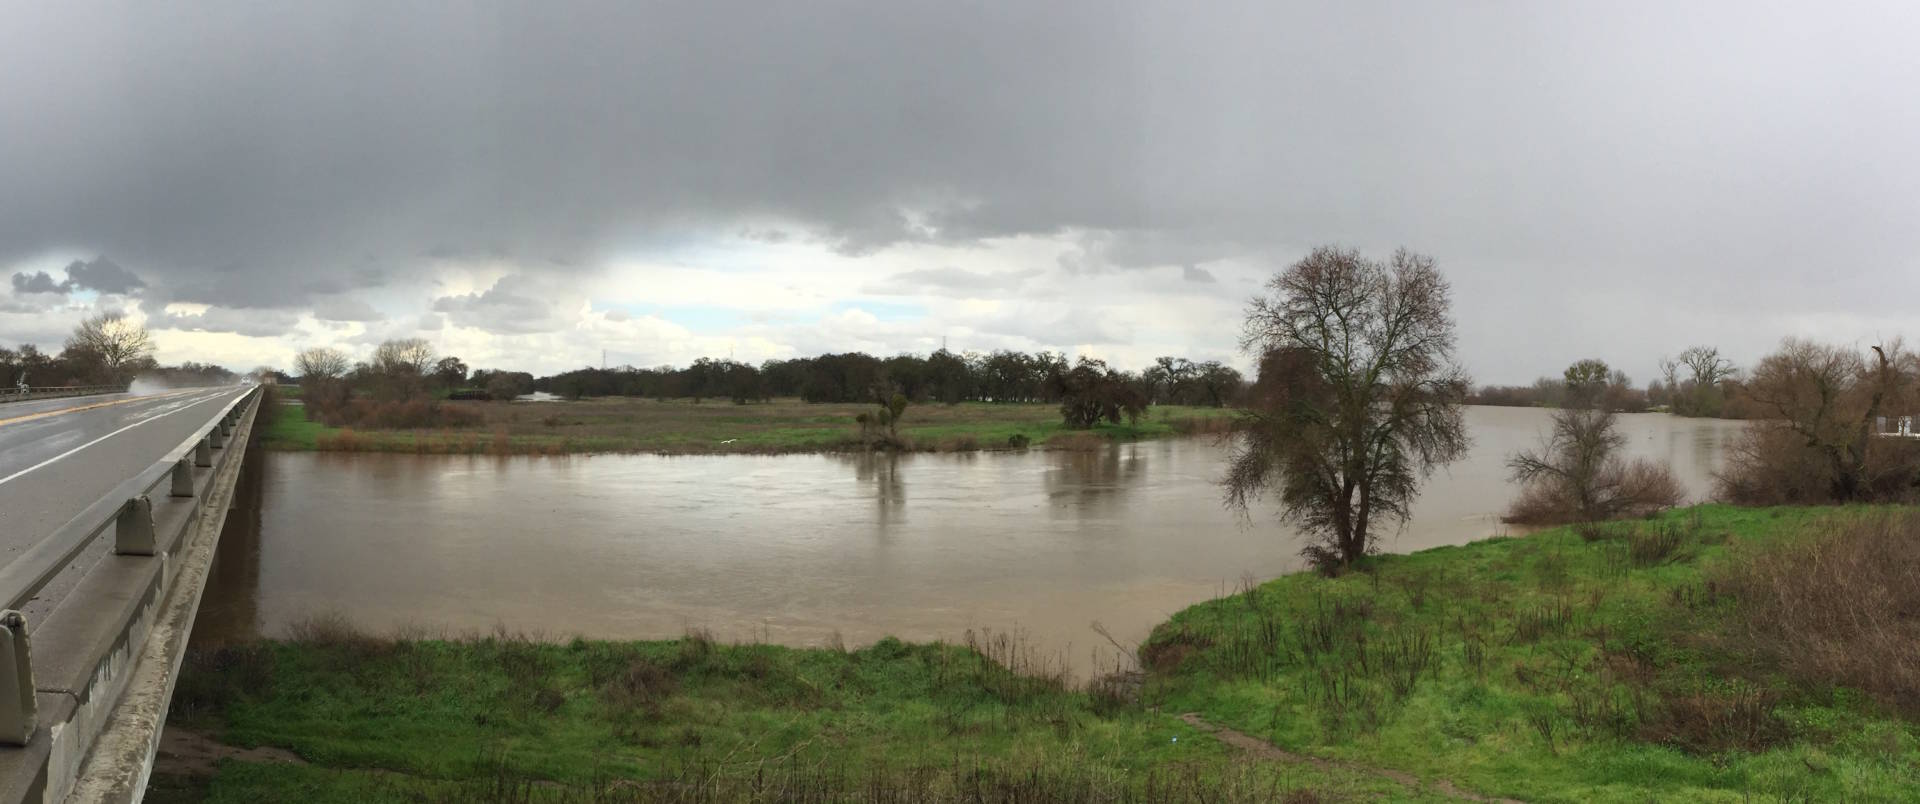 The San Joaquin River, which often runs dry before reaching its mouth, spreads out along Hwy 132 west of Modesto, after weekend storms.